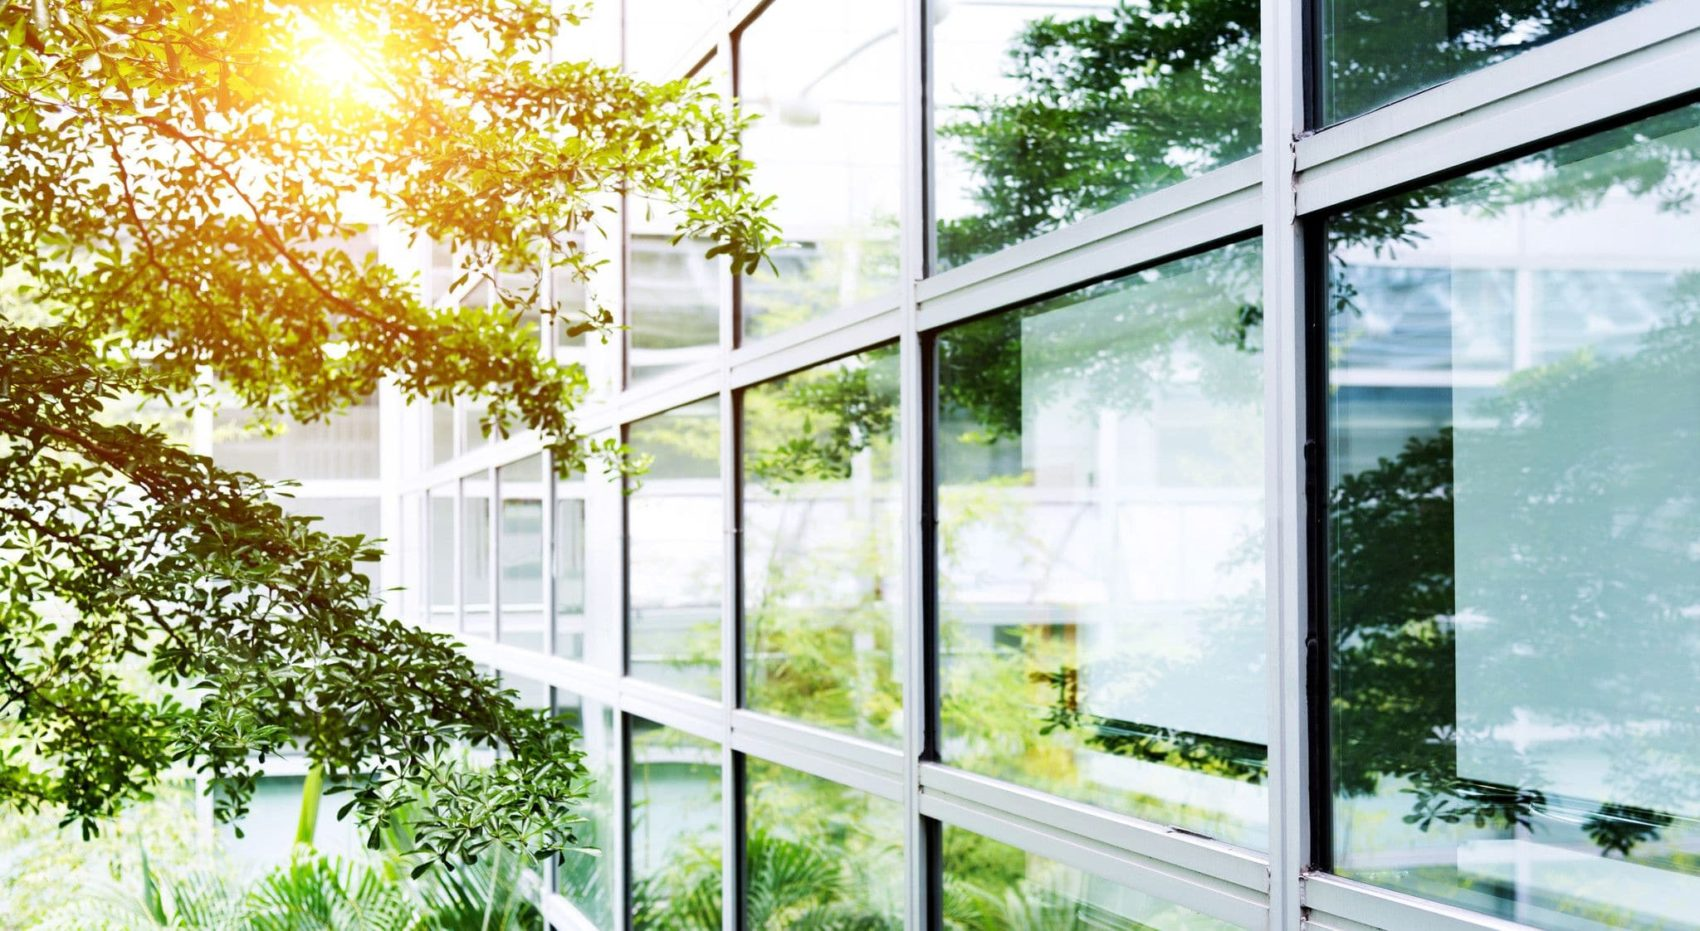 10 Fantastic Ideas for Considering Green Buildings